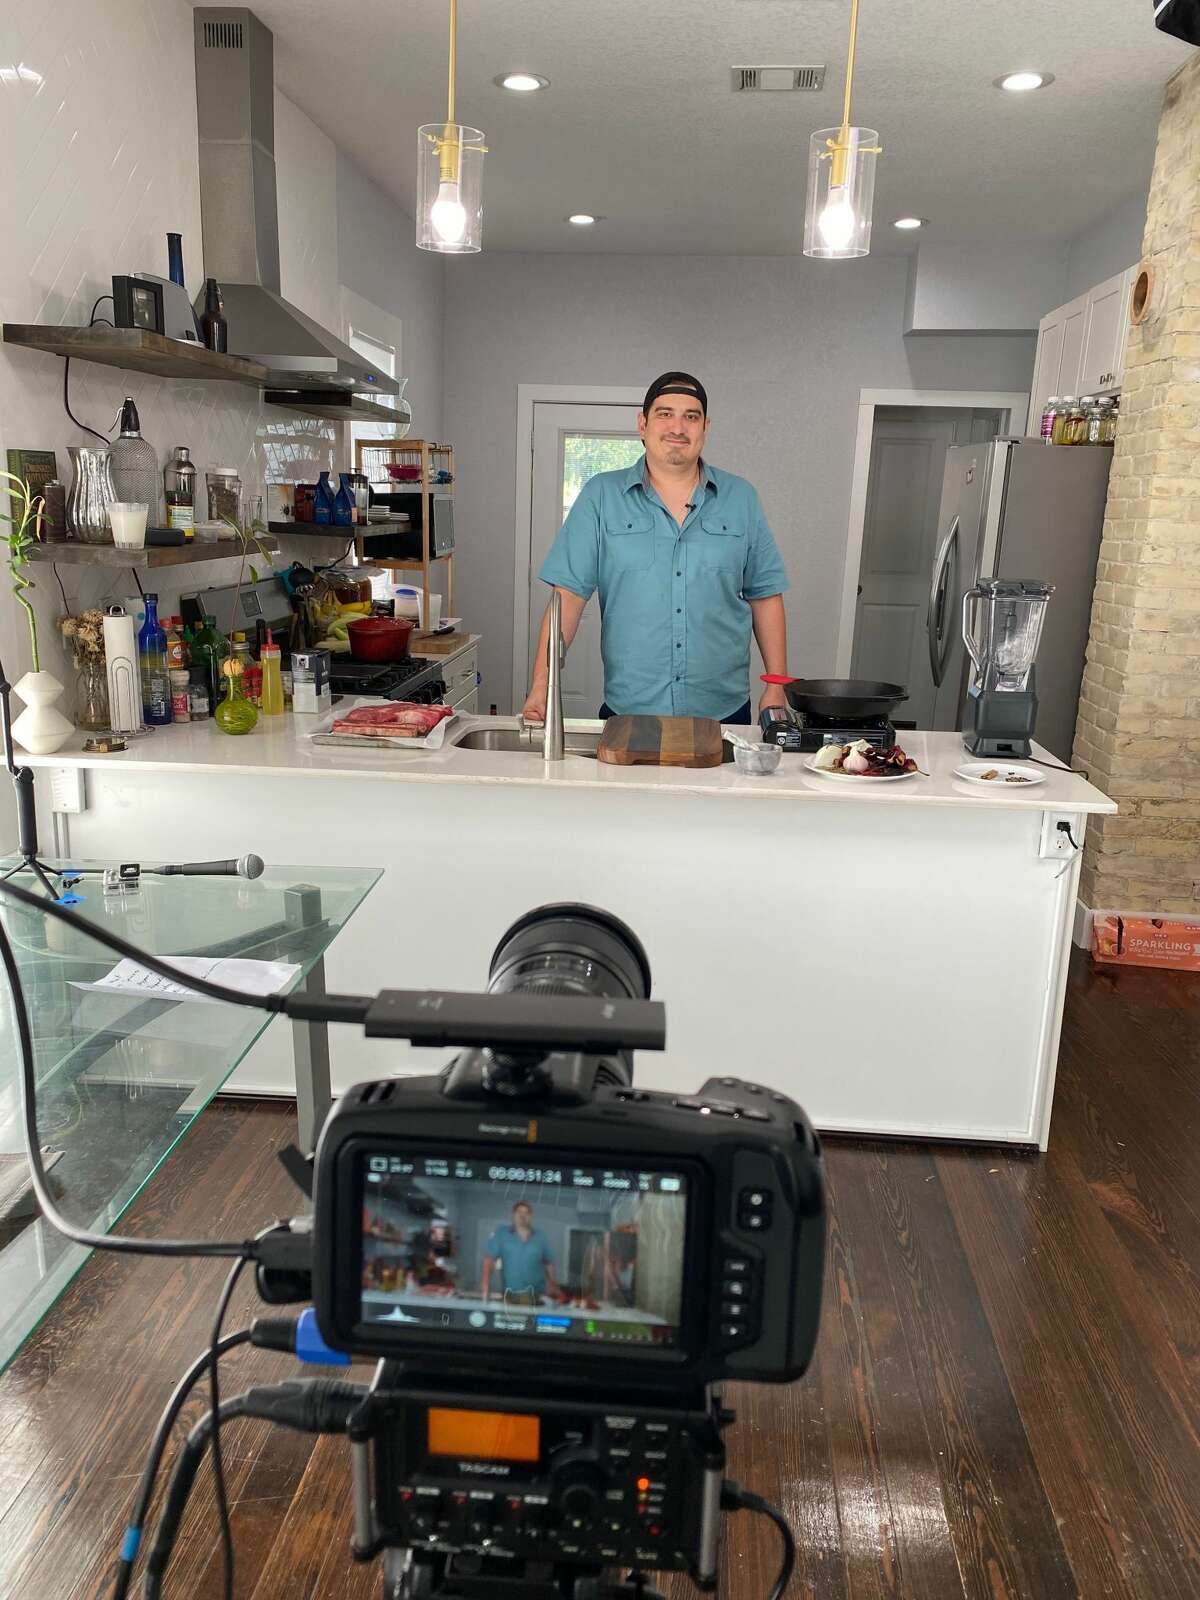 Aldo Mancilla speaks to the camera as he films an episode of